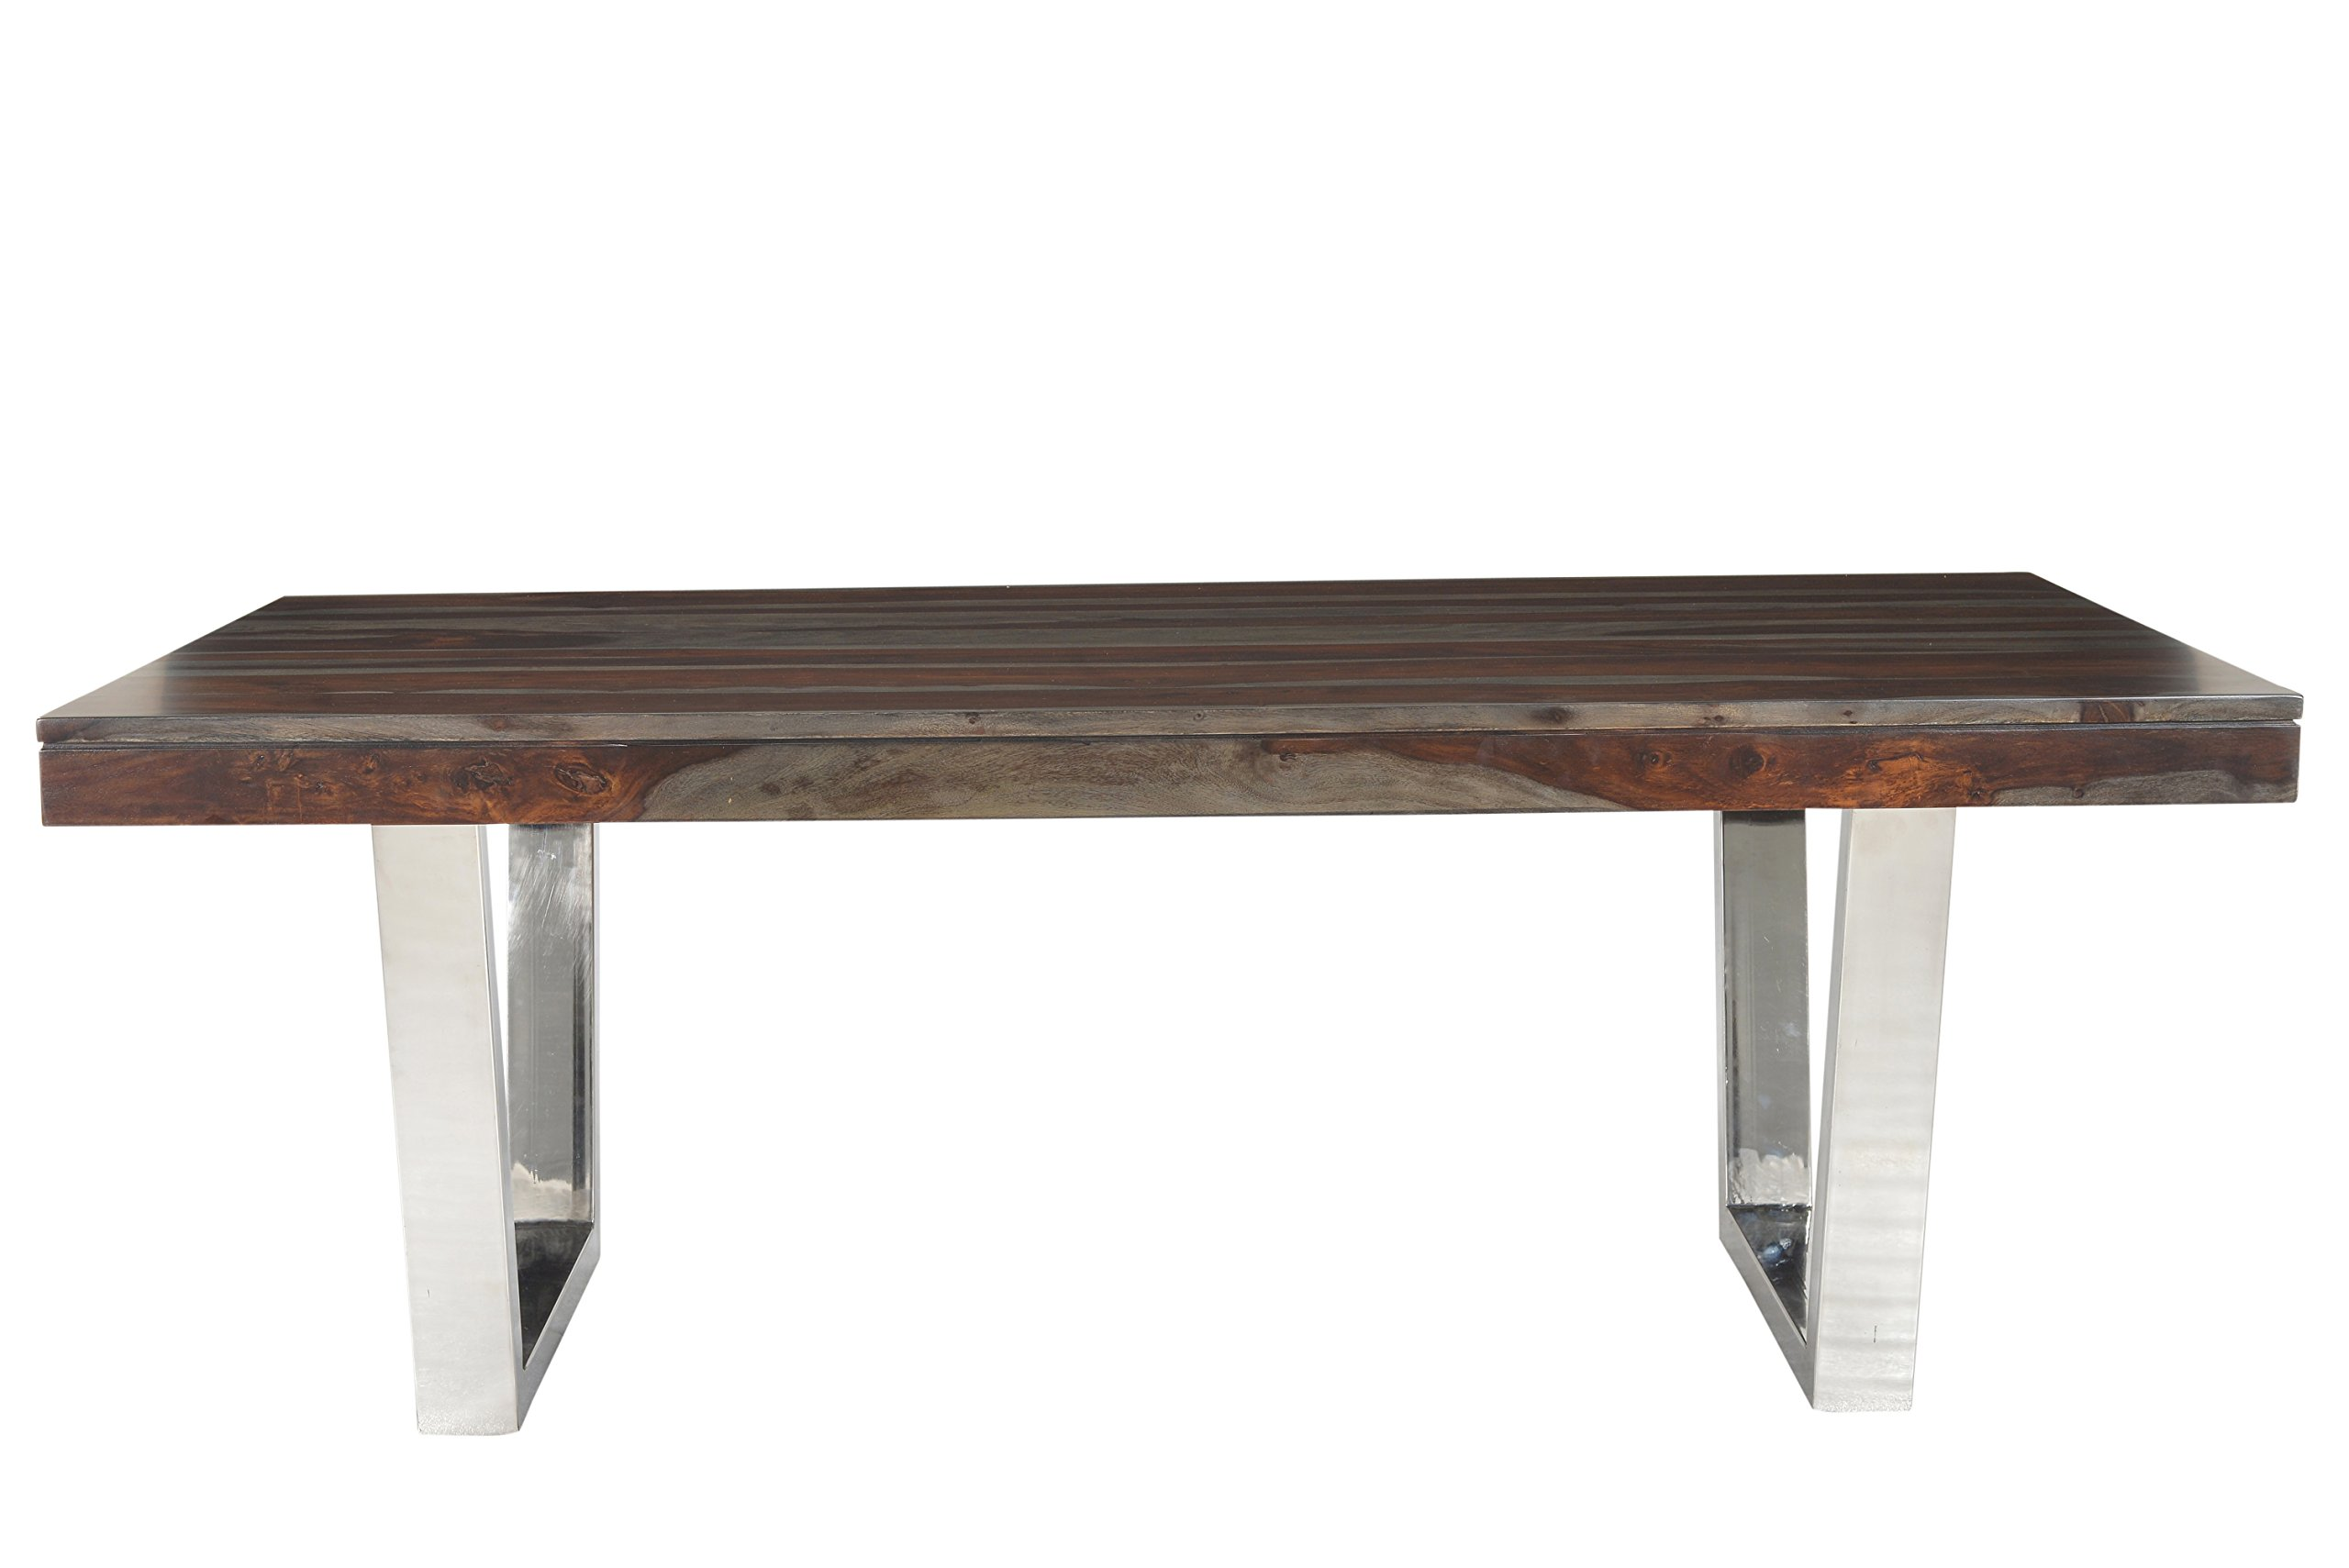 Treasure Trove Stainless Steel Base Grayson Dining Table, Grey and Red